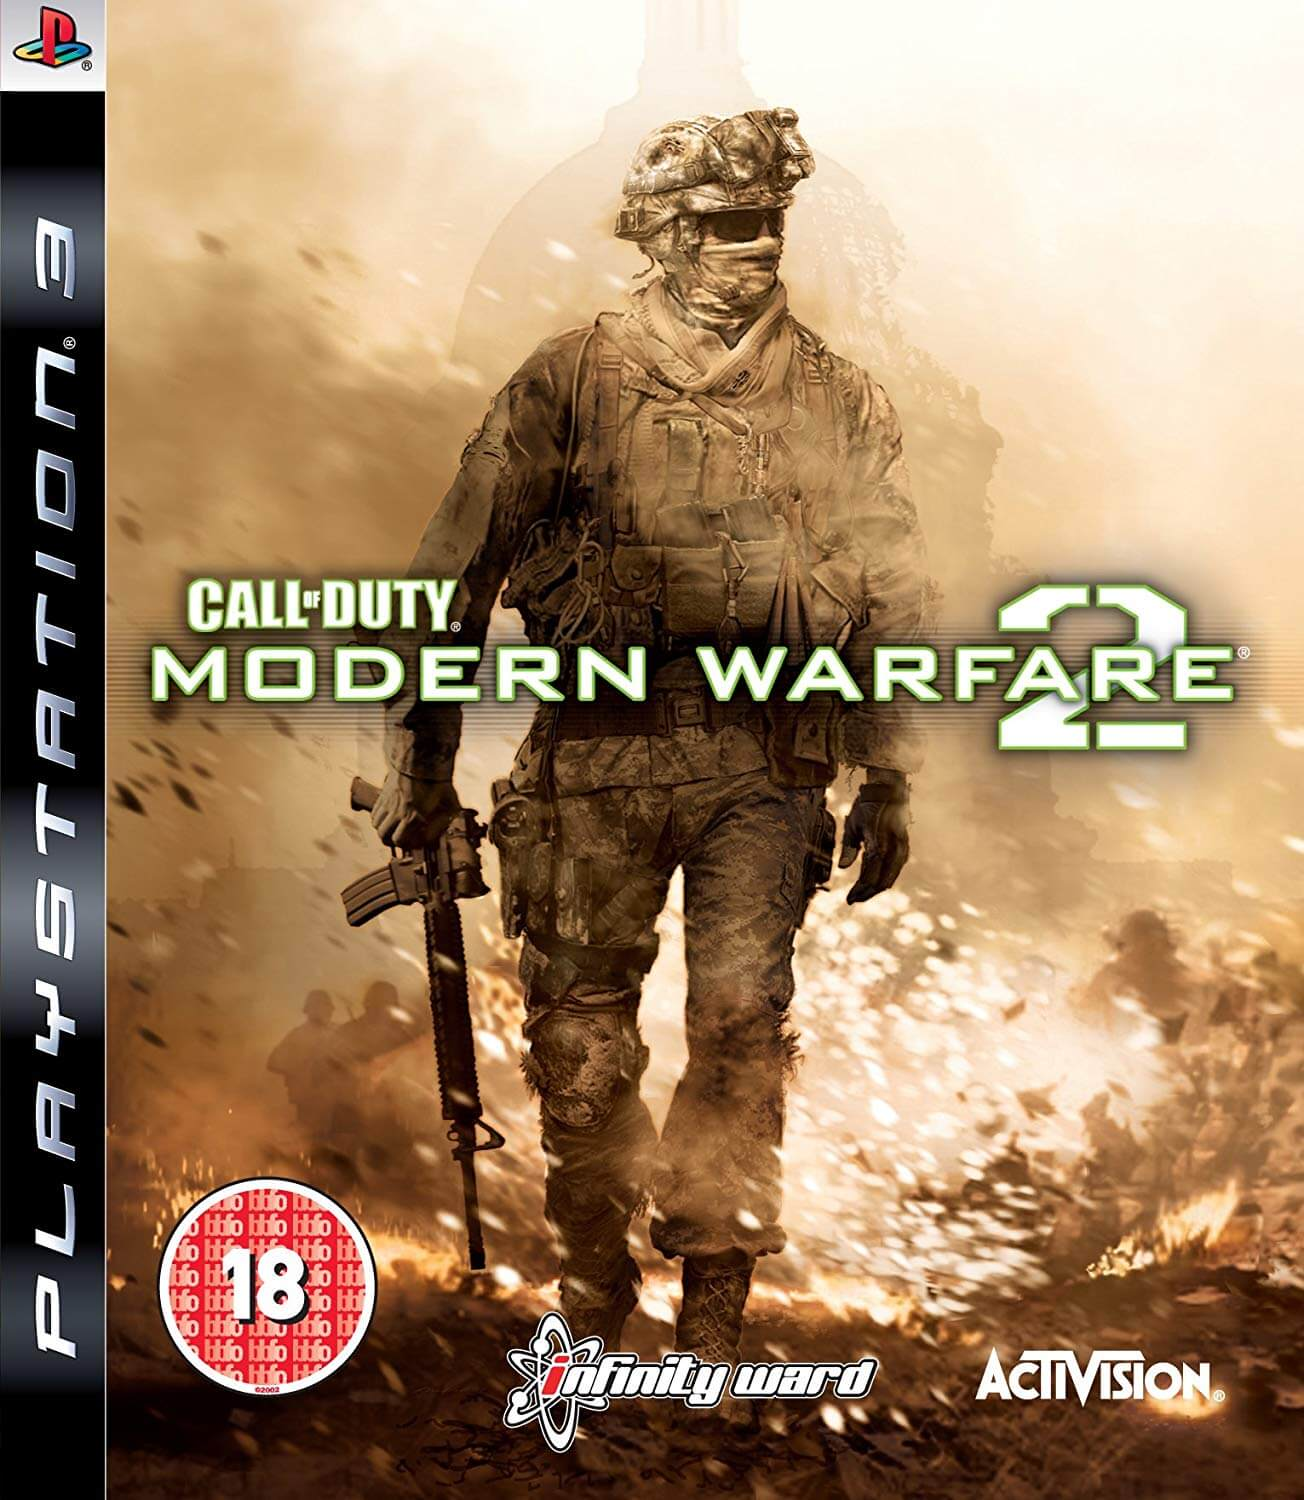 GRA CALL OF DUTY MODERN WARFARE 2 PS3 ENG